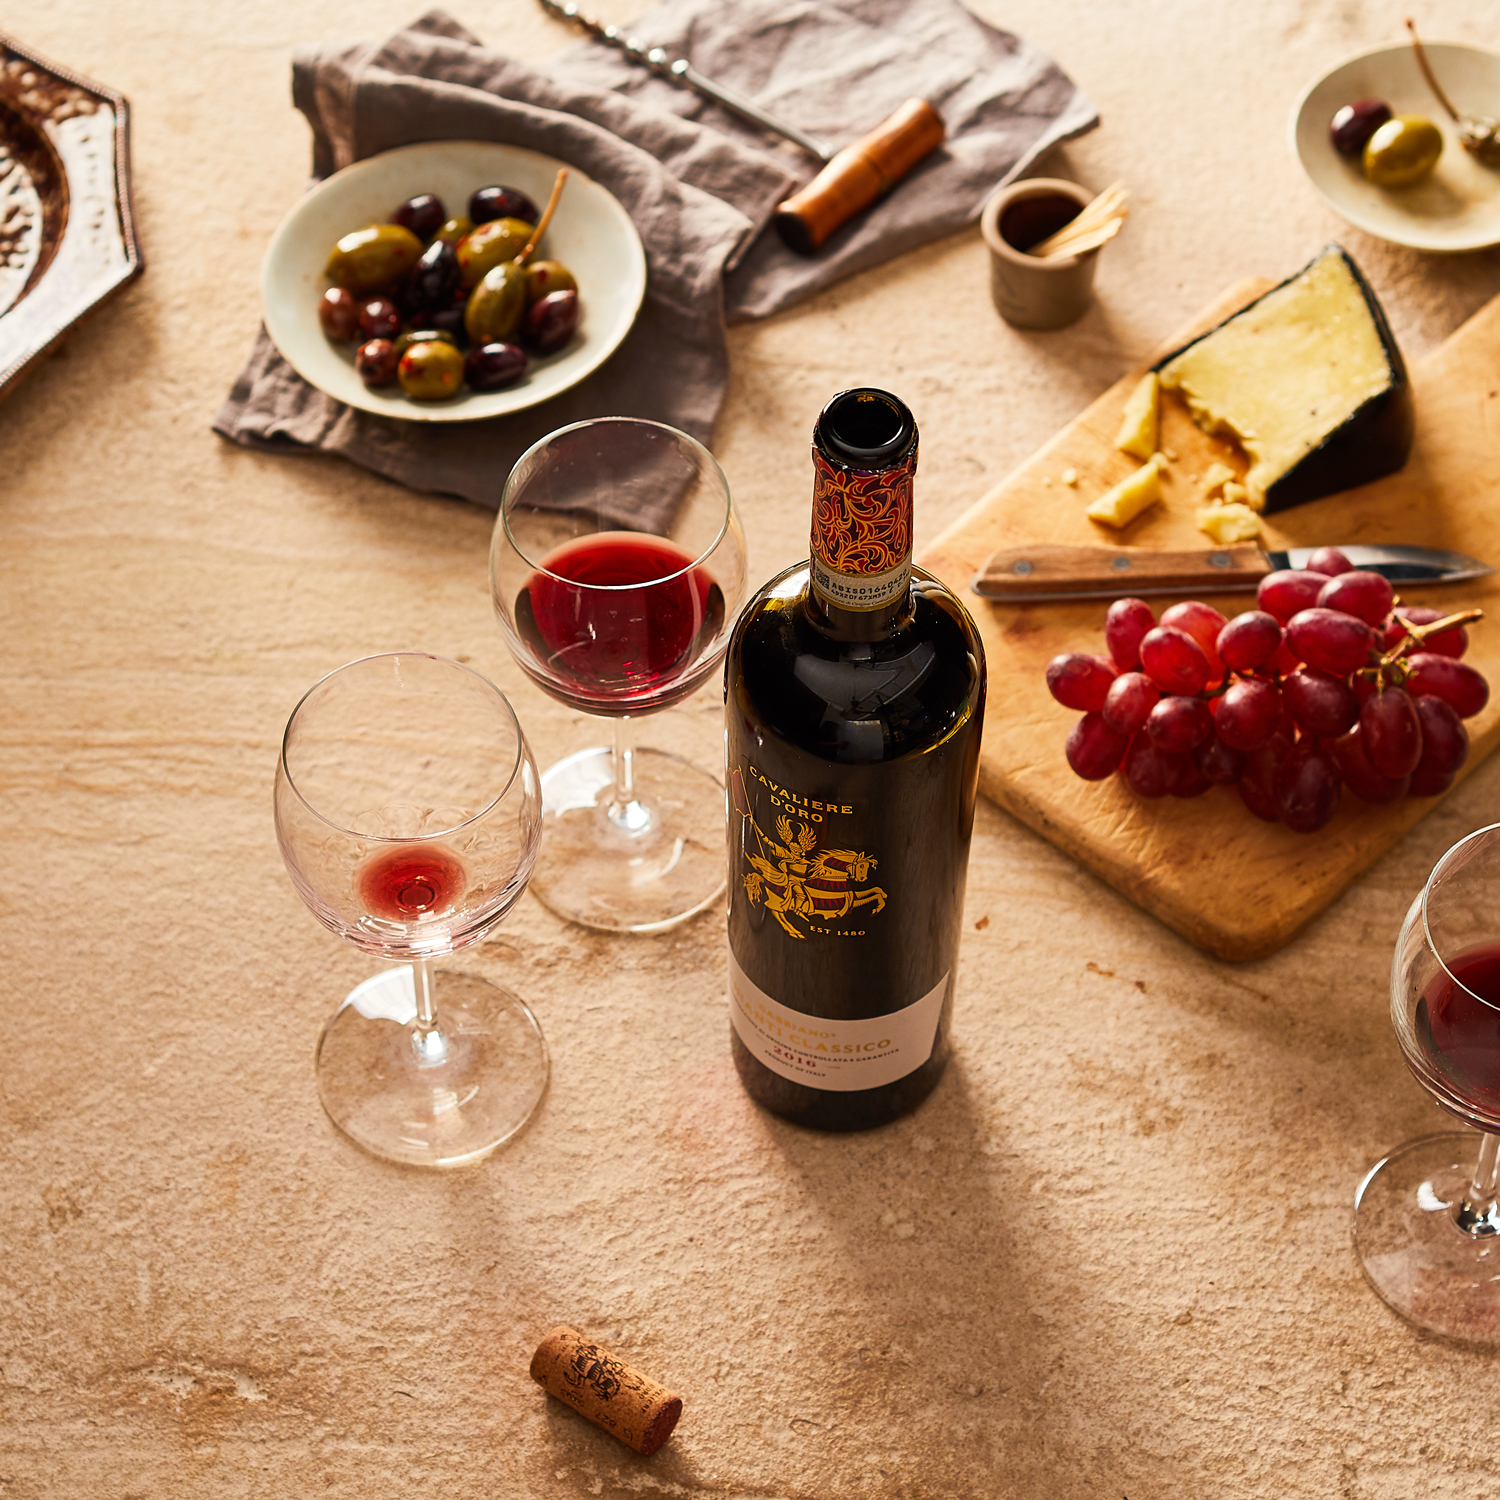 bottle of wine olives in bowl and cutting board with grapes and cheese